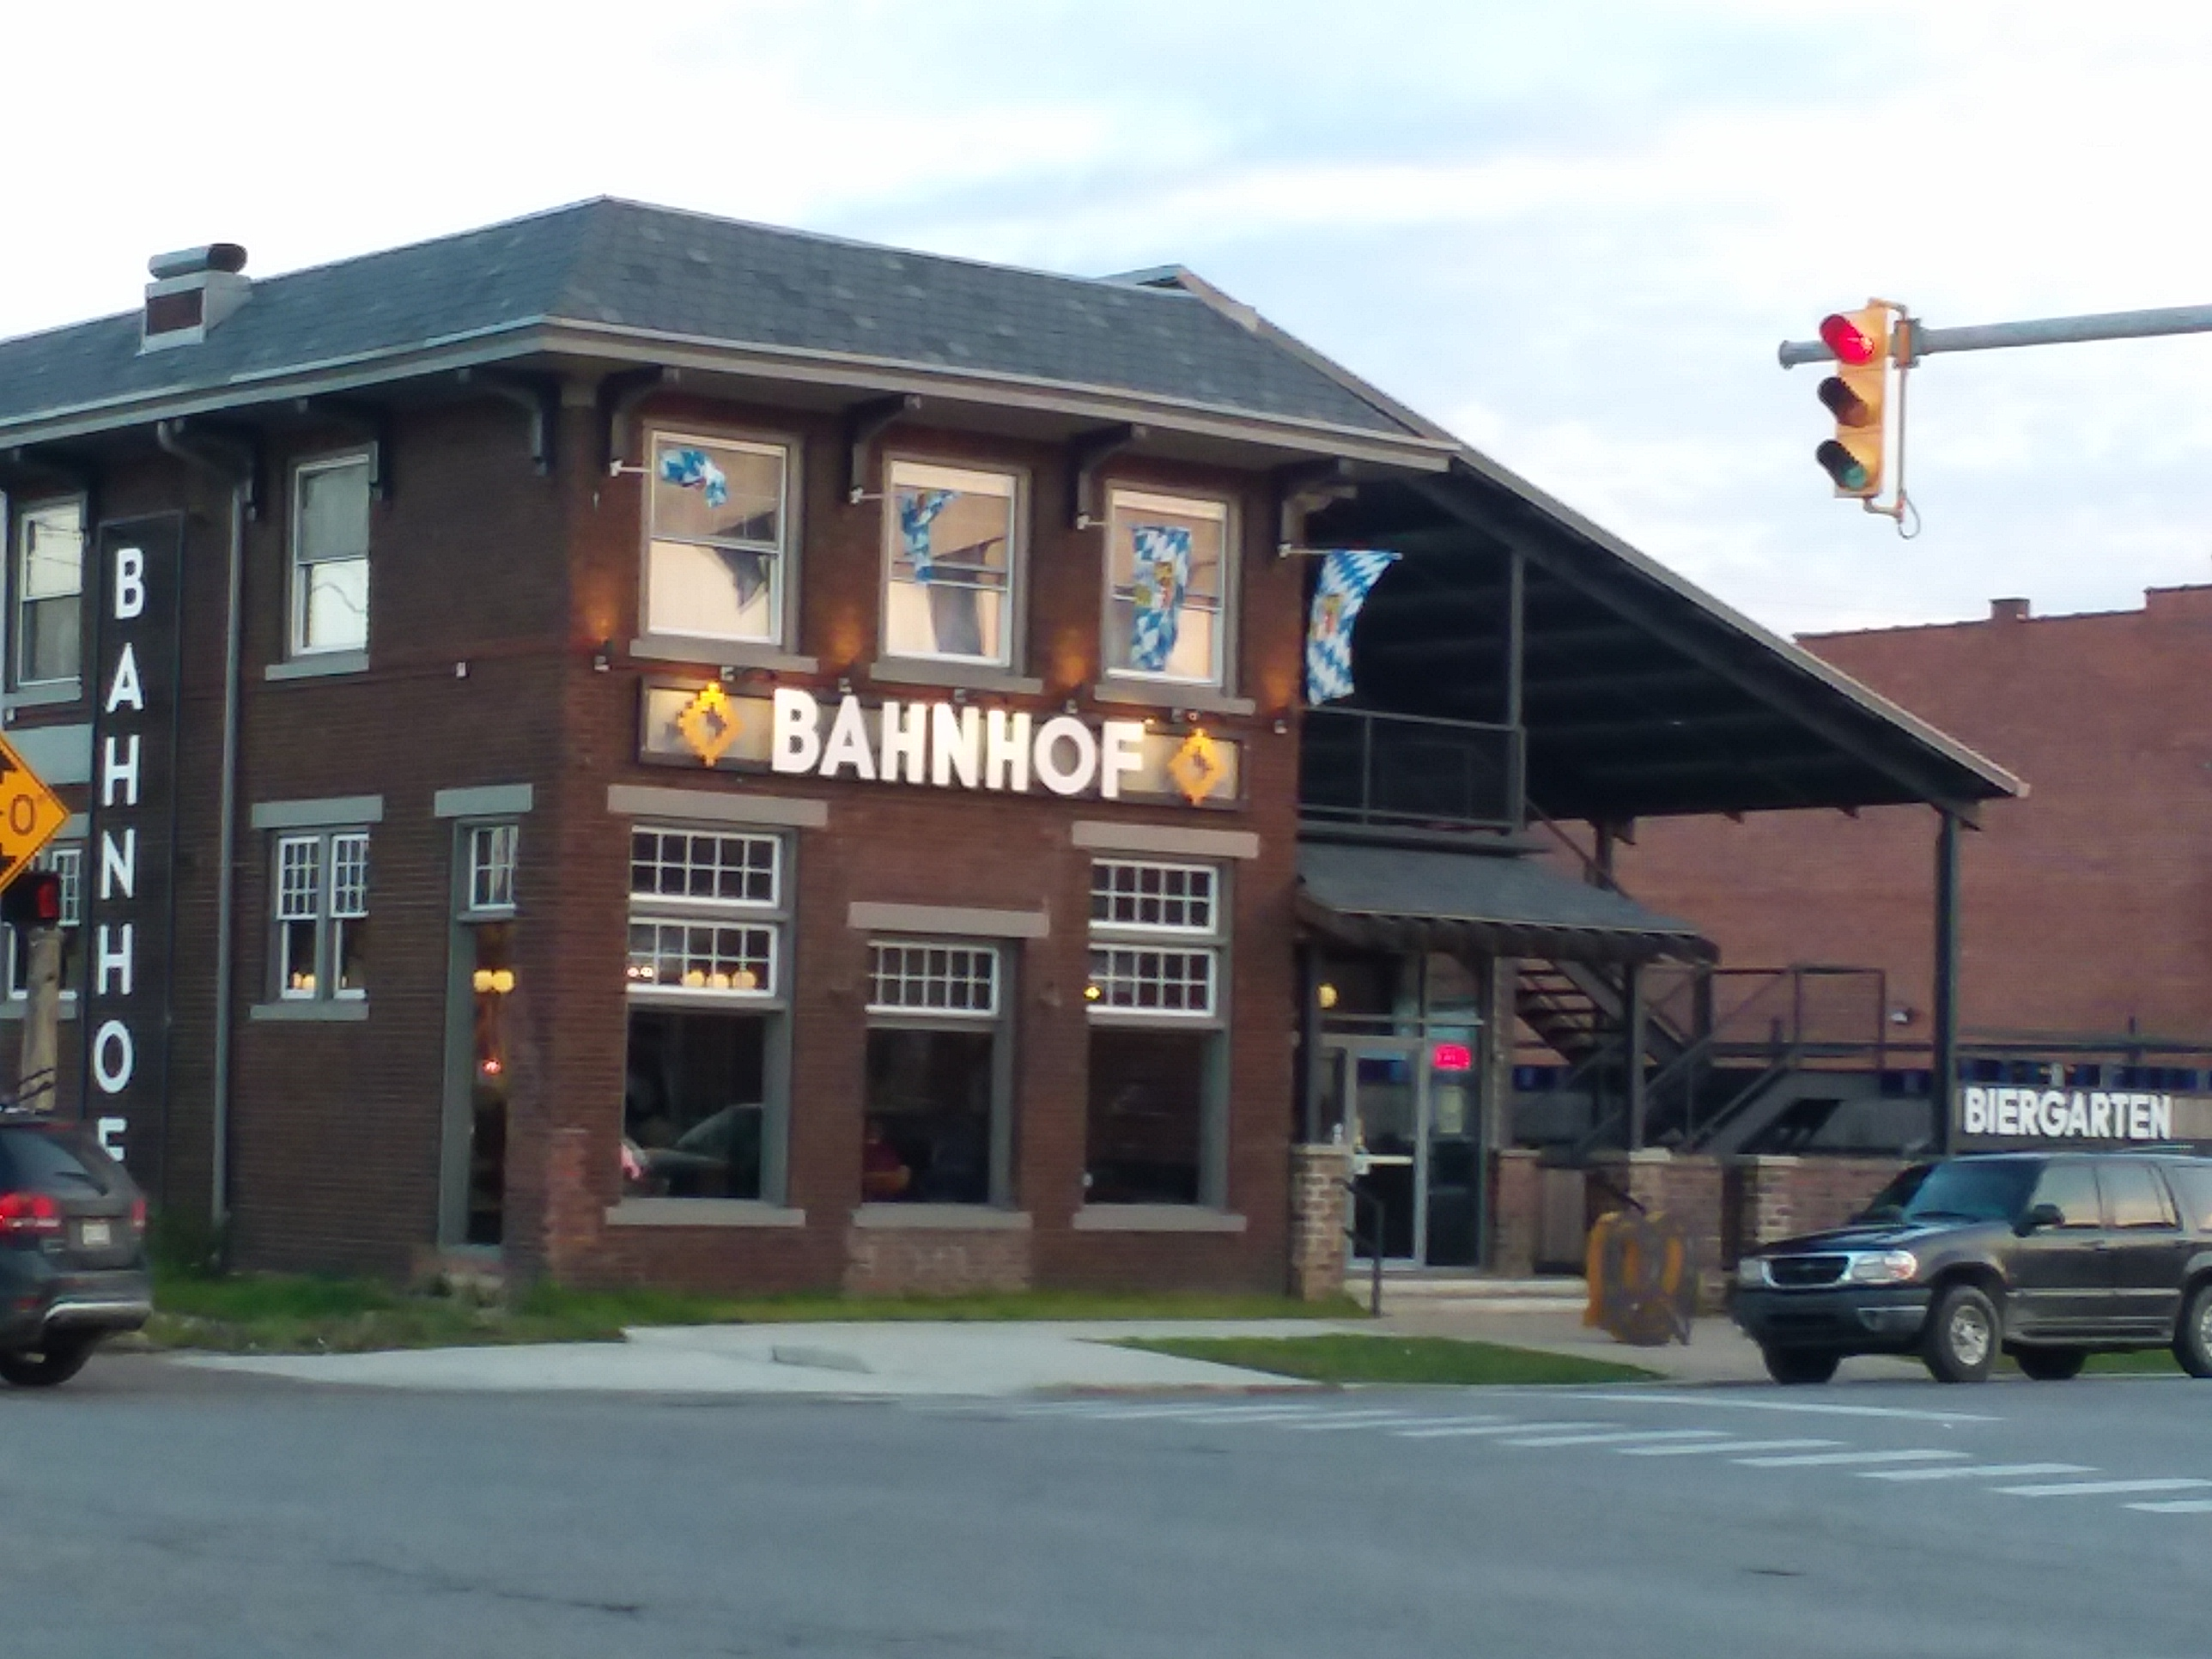 Bahnhof Is The Best German Restaurant In West Virginia